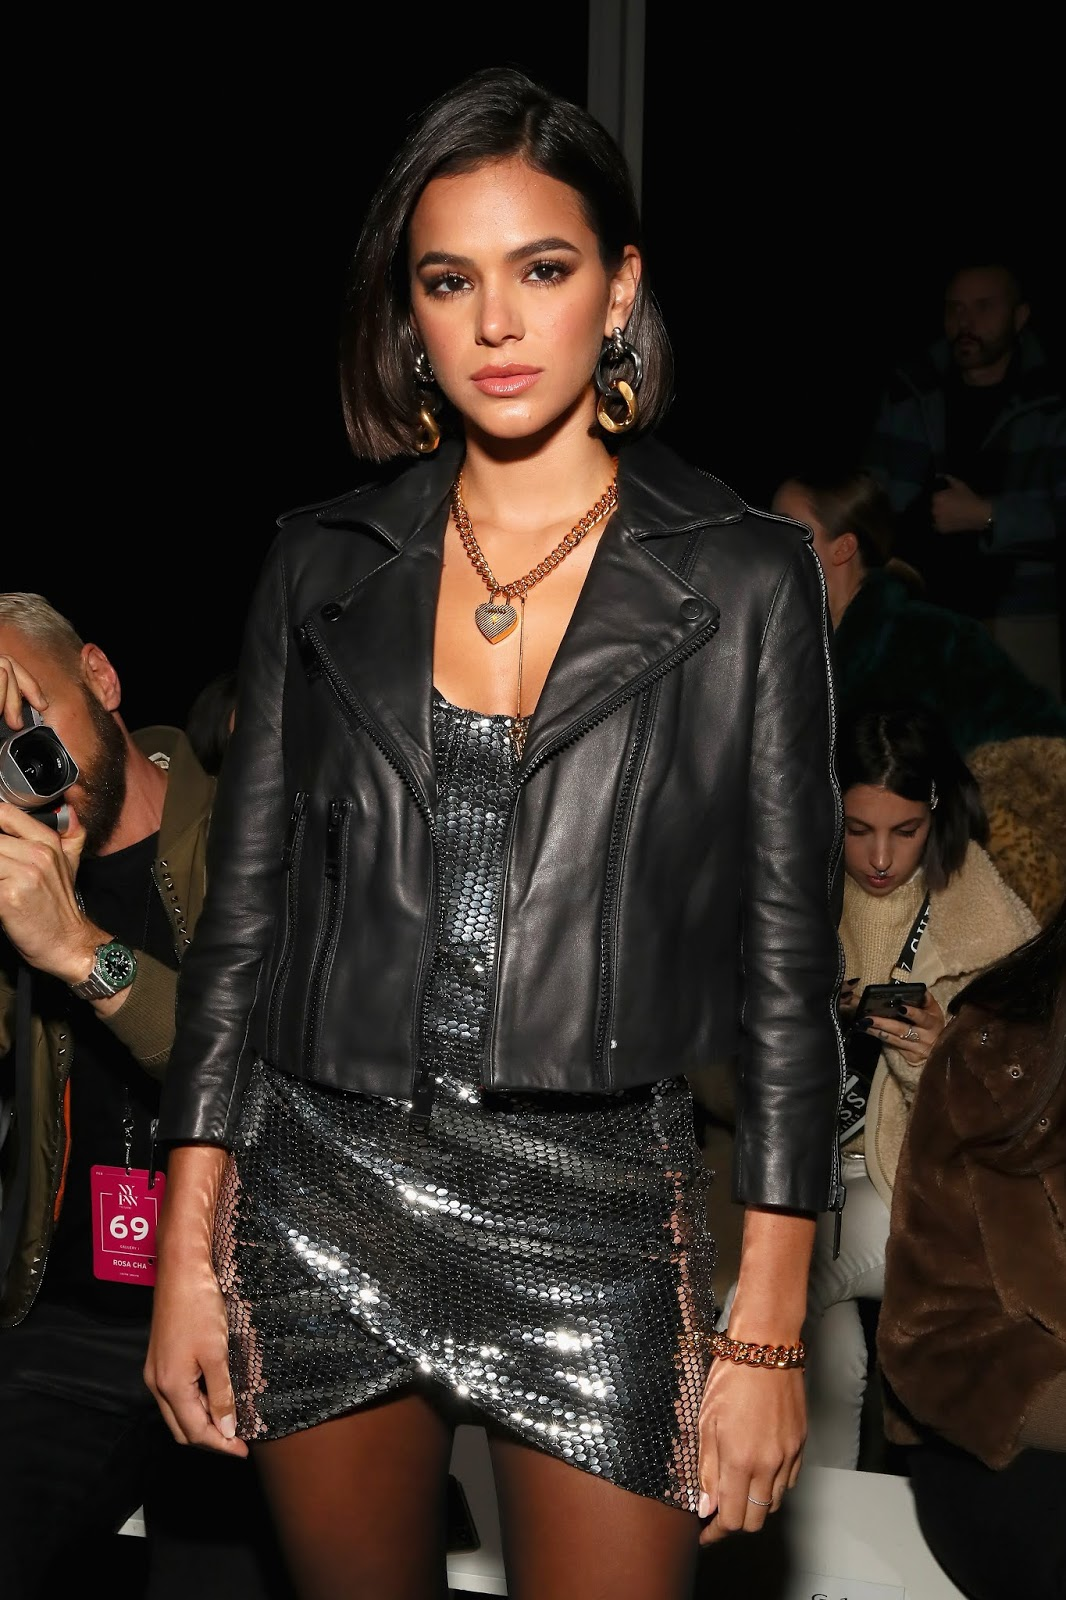 Bruna Marquezine - attends the Rosa Cha fashion show during NYFW in New York - 02/13/2019